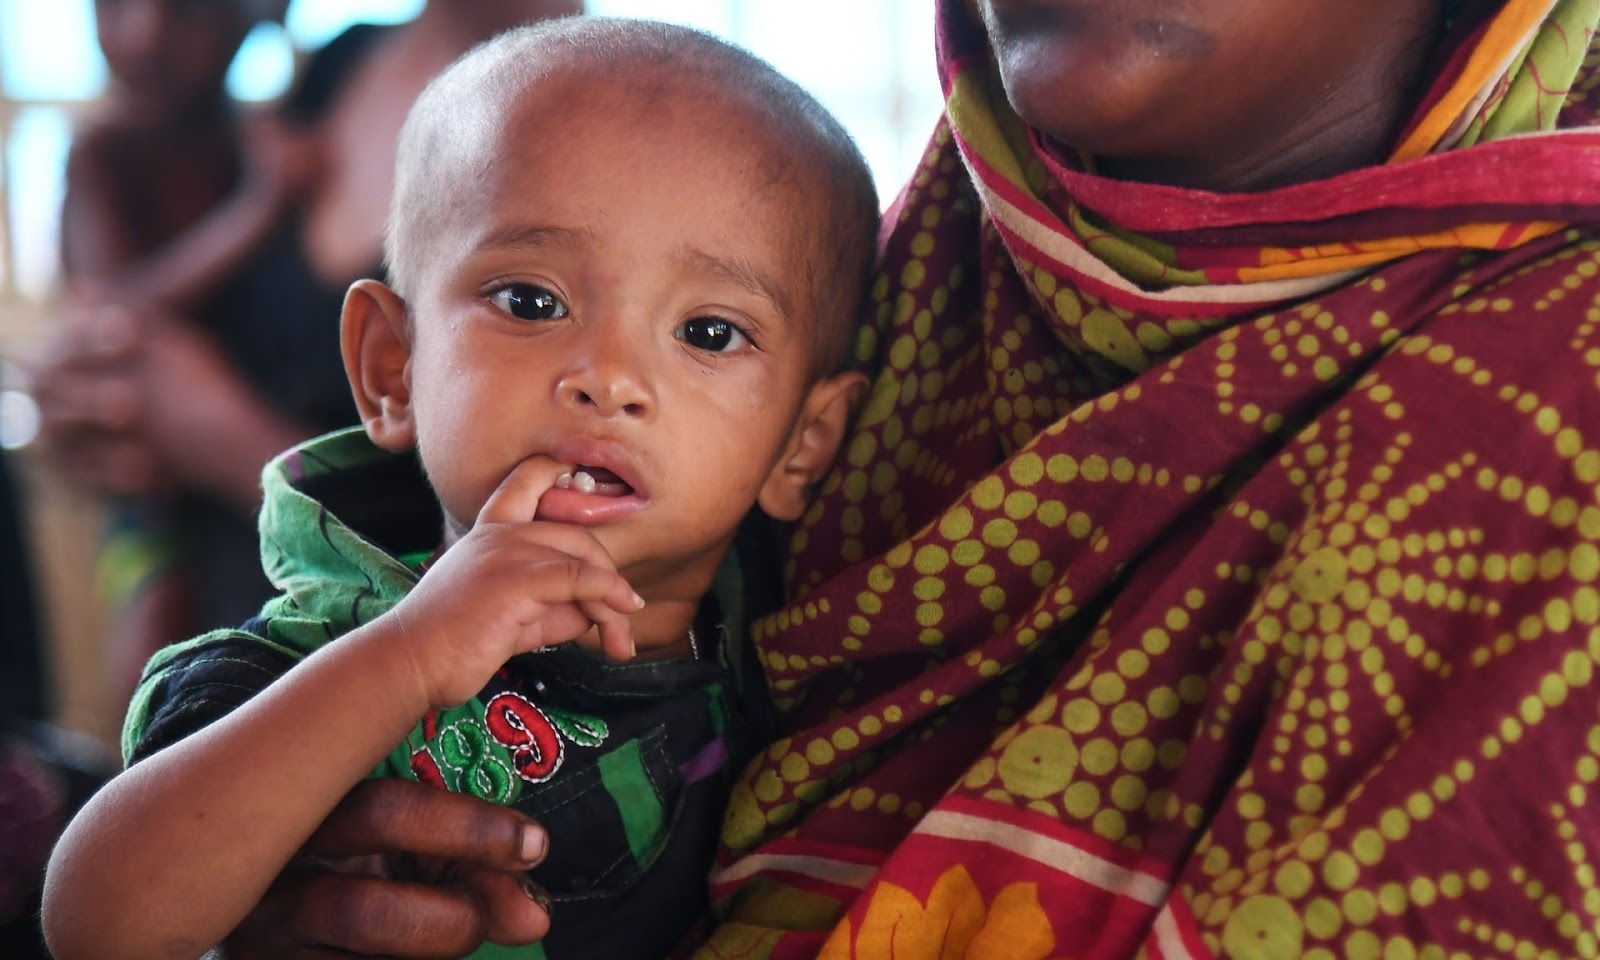 Malnutrition, anaemia  plague Rohingya children: Unicef